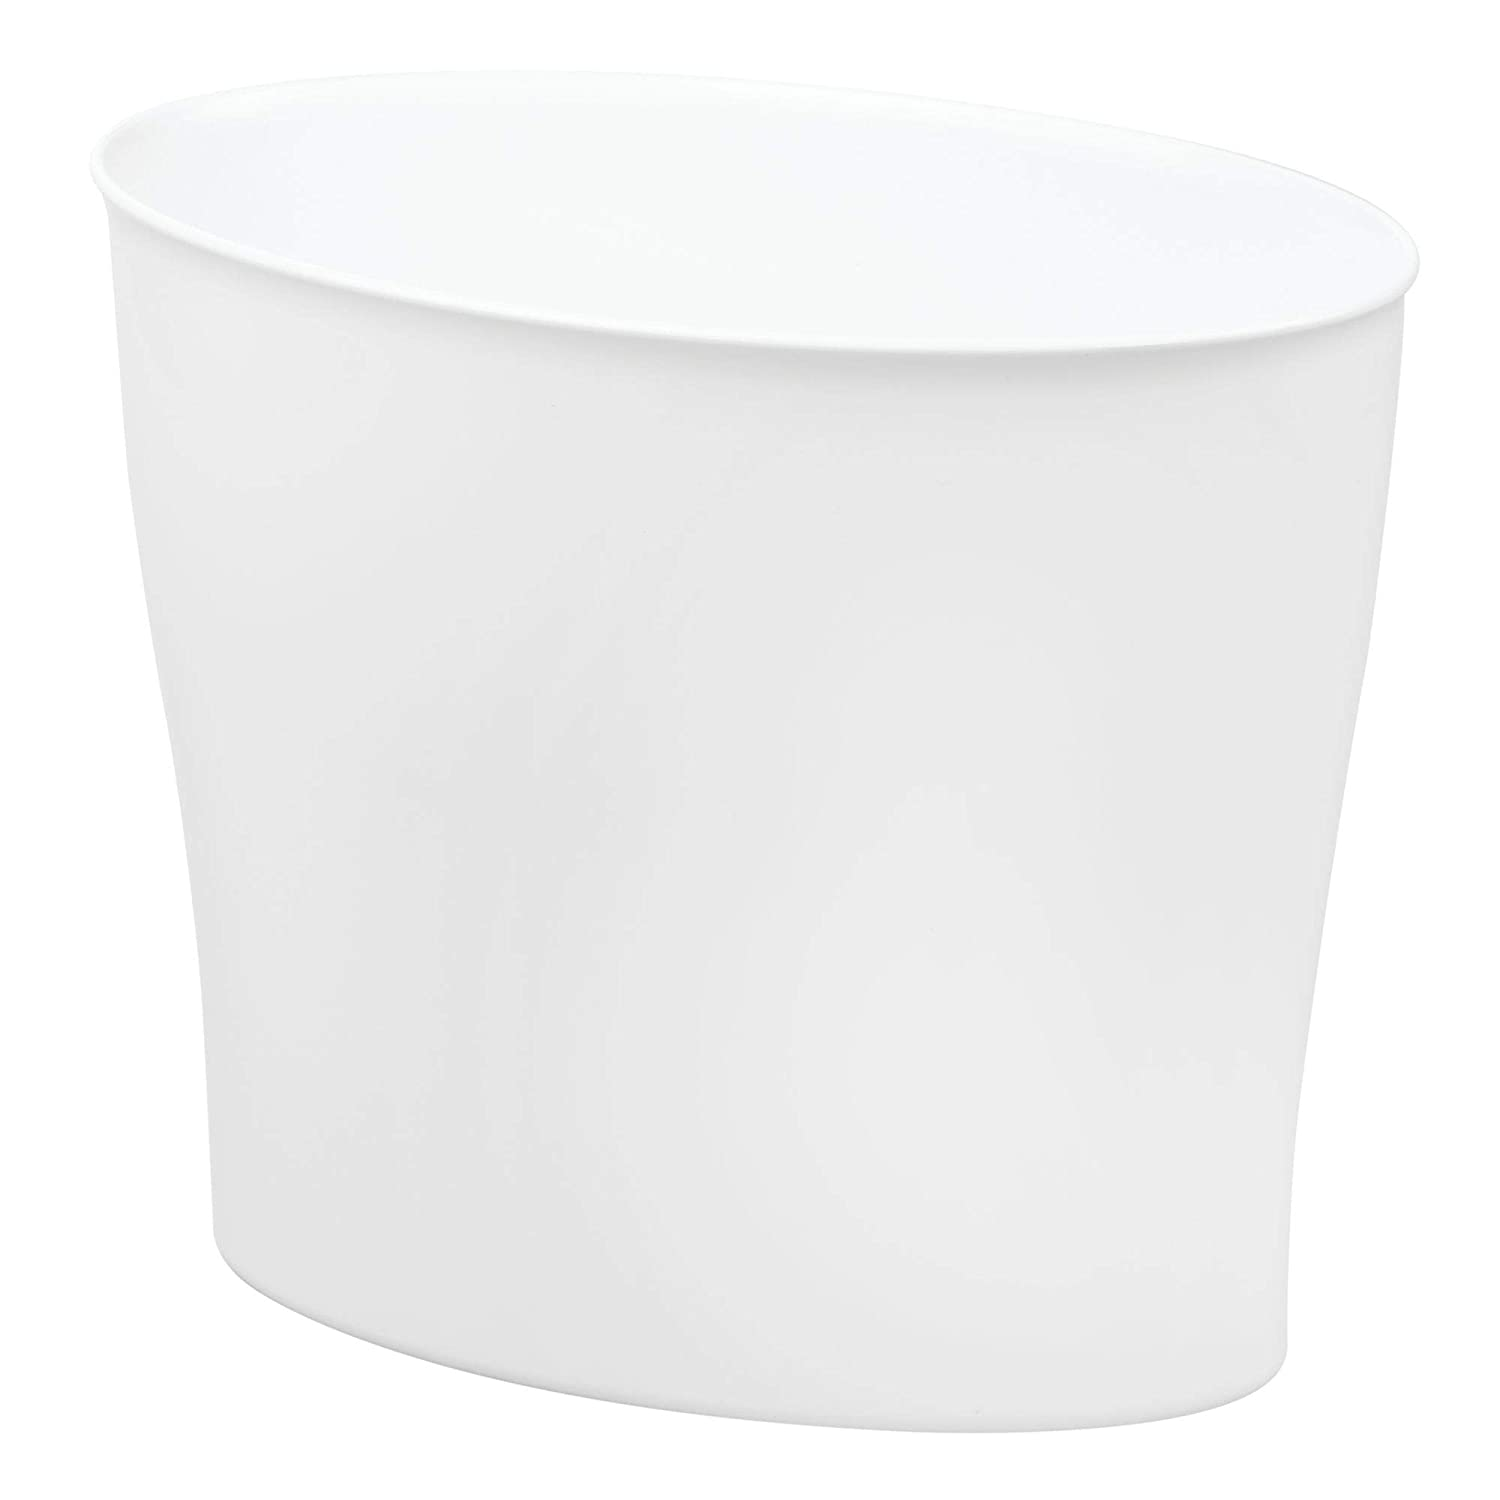 InterDesign Wastebasket Trash Bathroom, Bedroom or Office – White Nuvo Waste Can